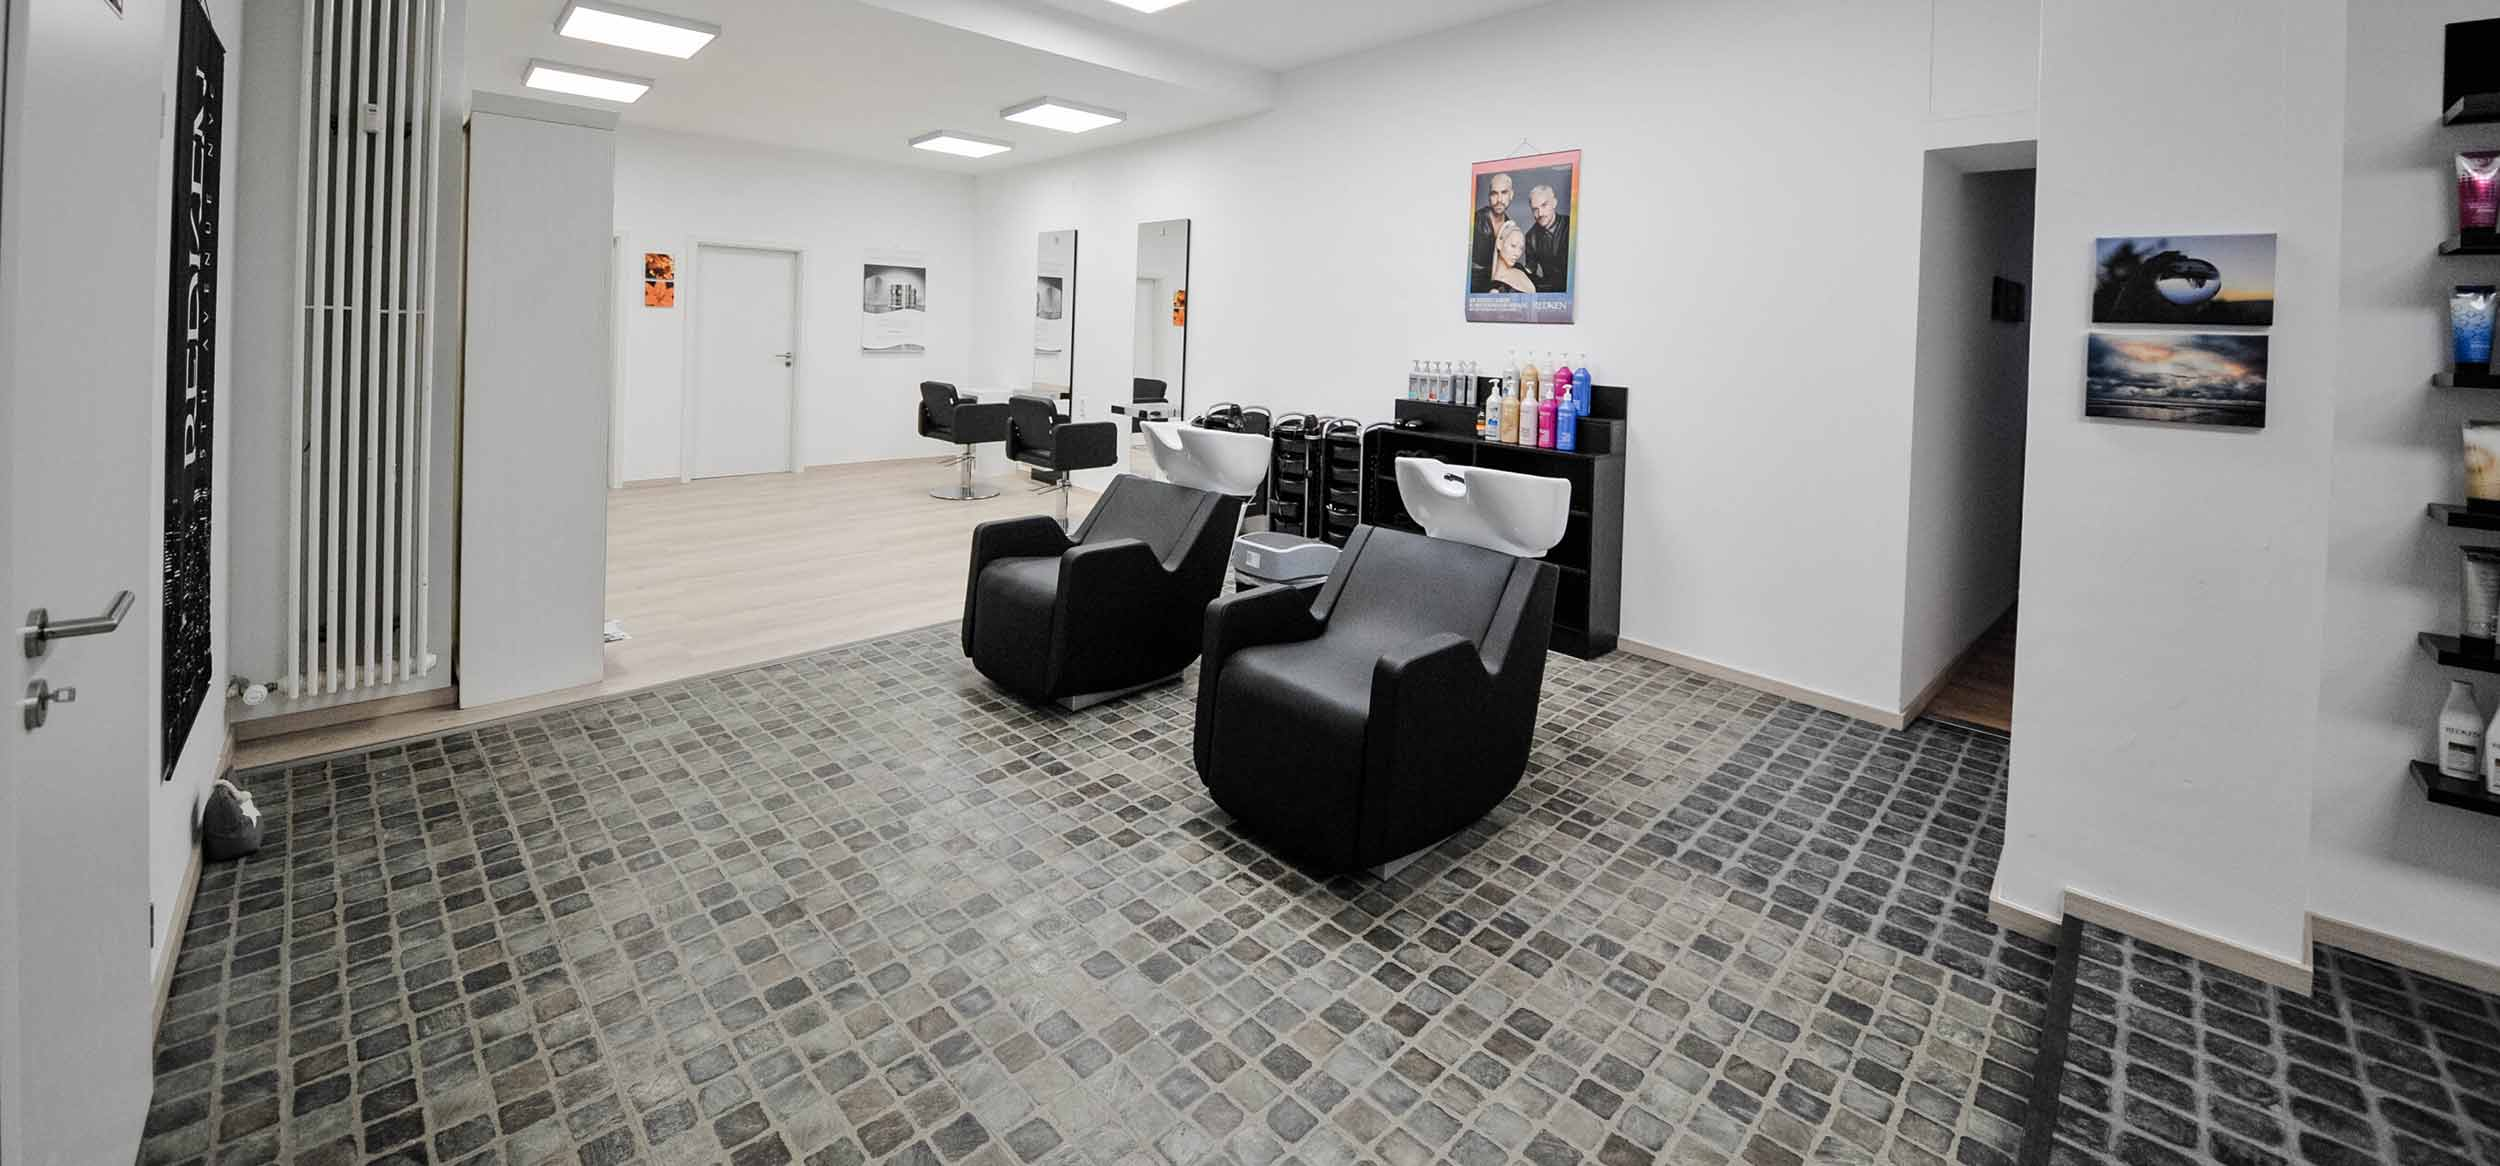 Salon Karlstadt – Intercoiffure Bonetti